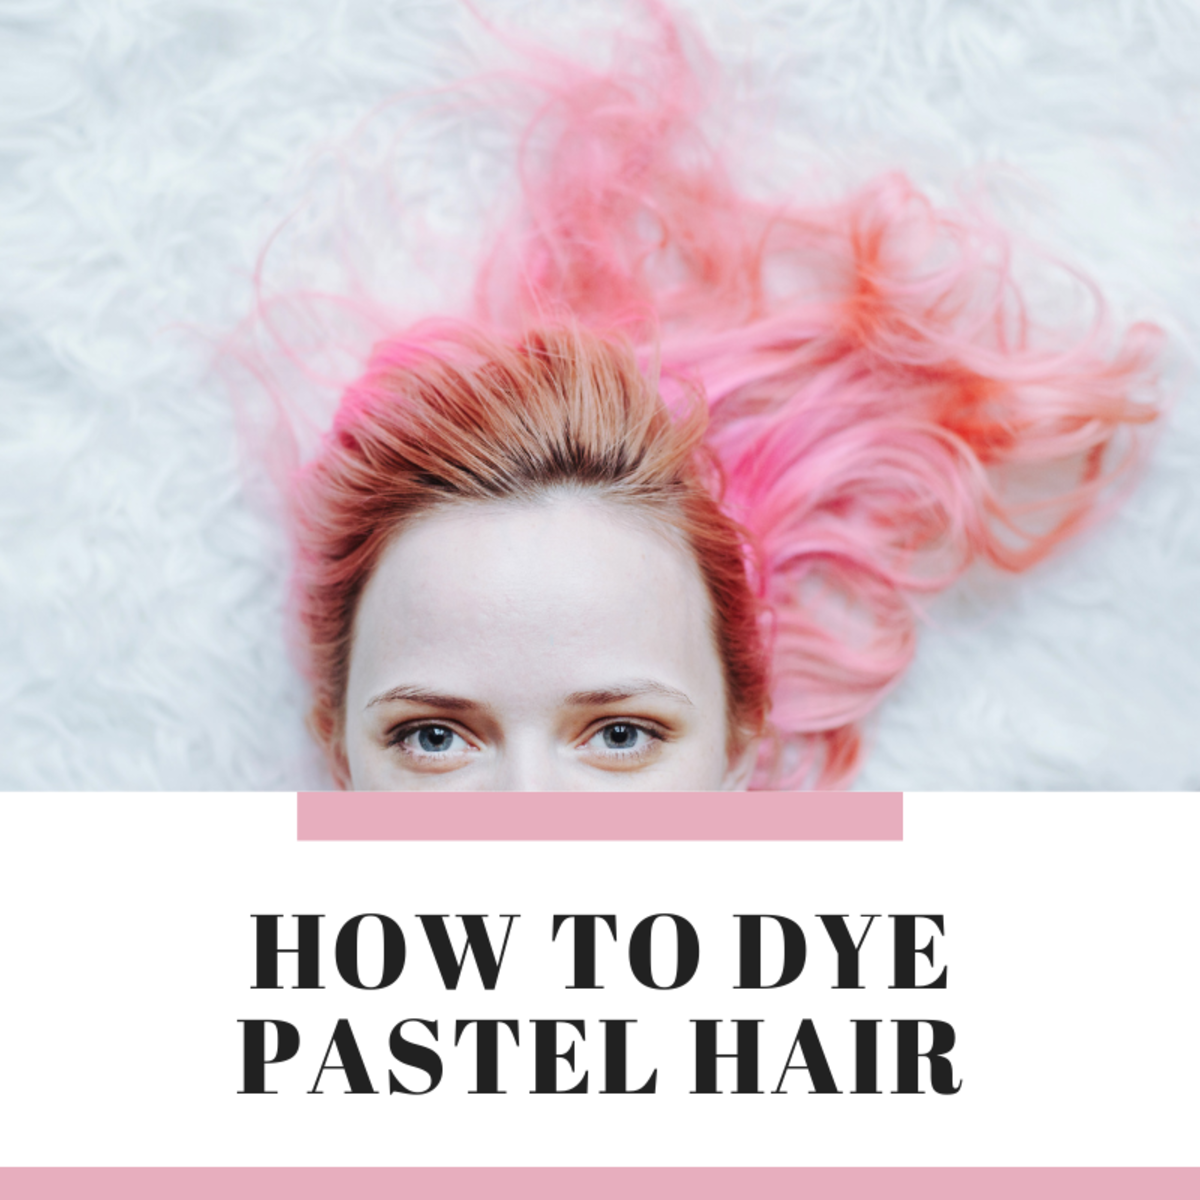 How to Dye Pastel Hair